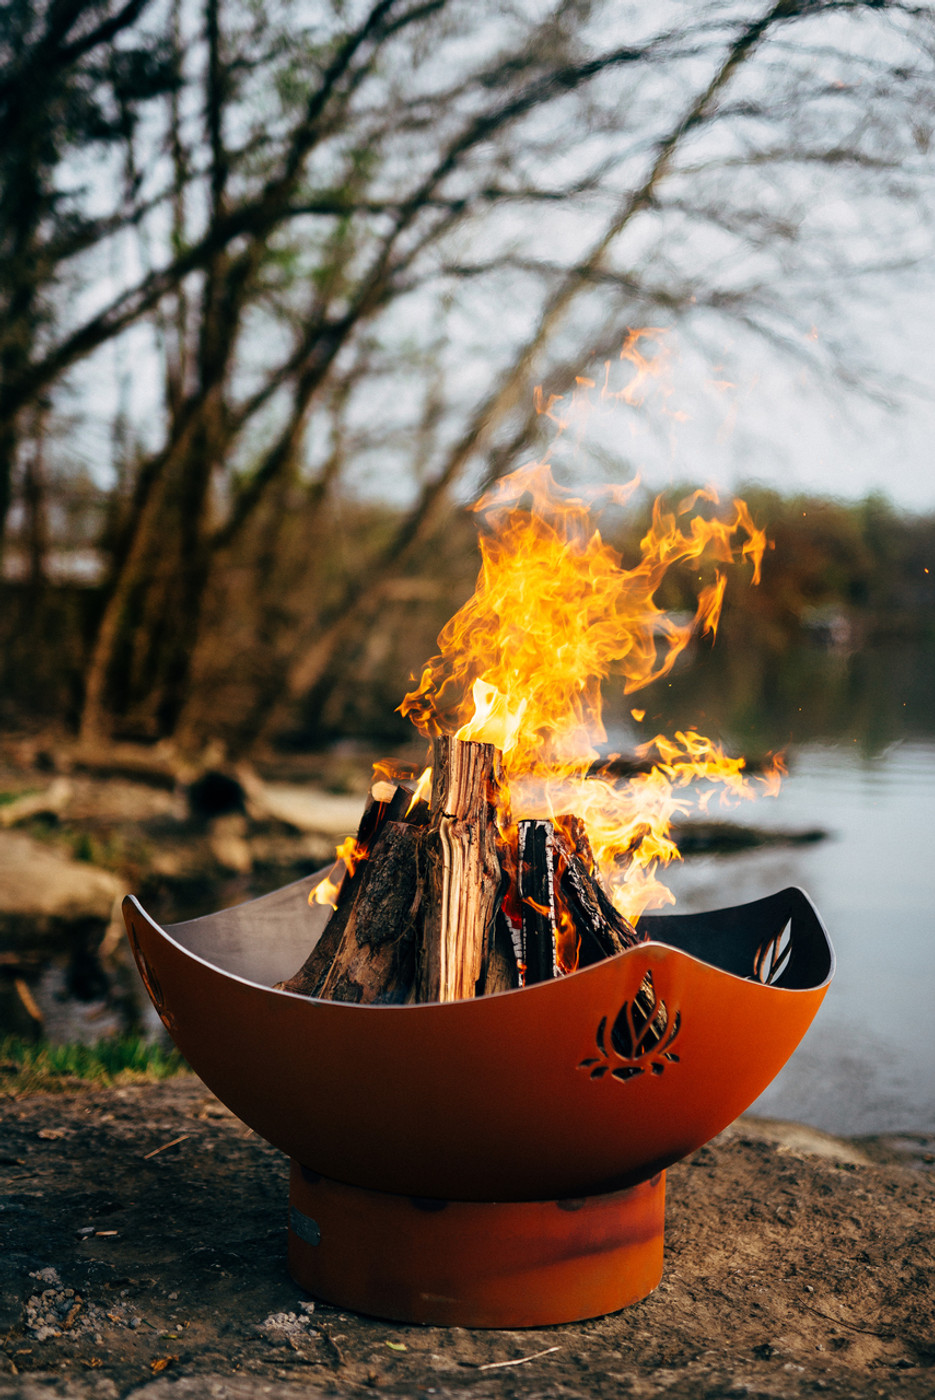 Soothing evenings by a fire pit, Namaste